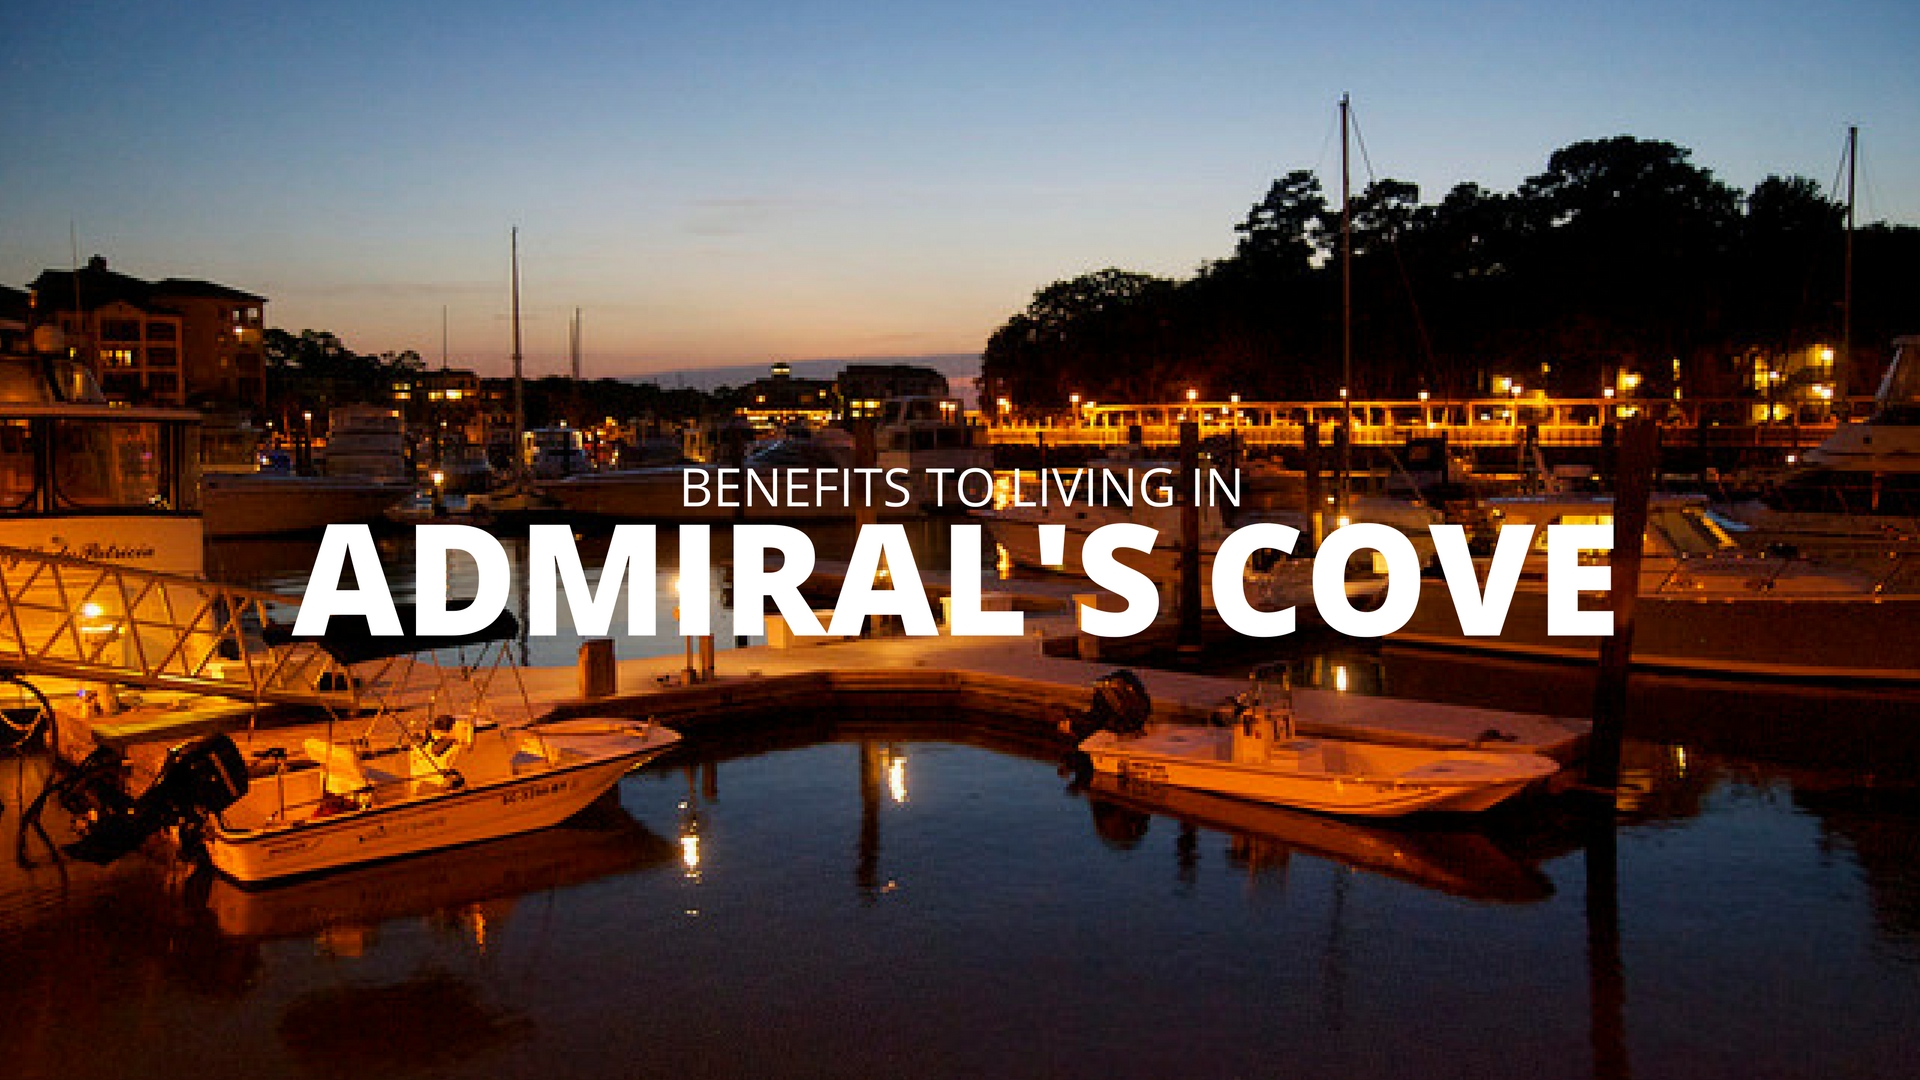 Admirals Cove Updates for Residents